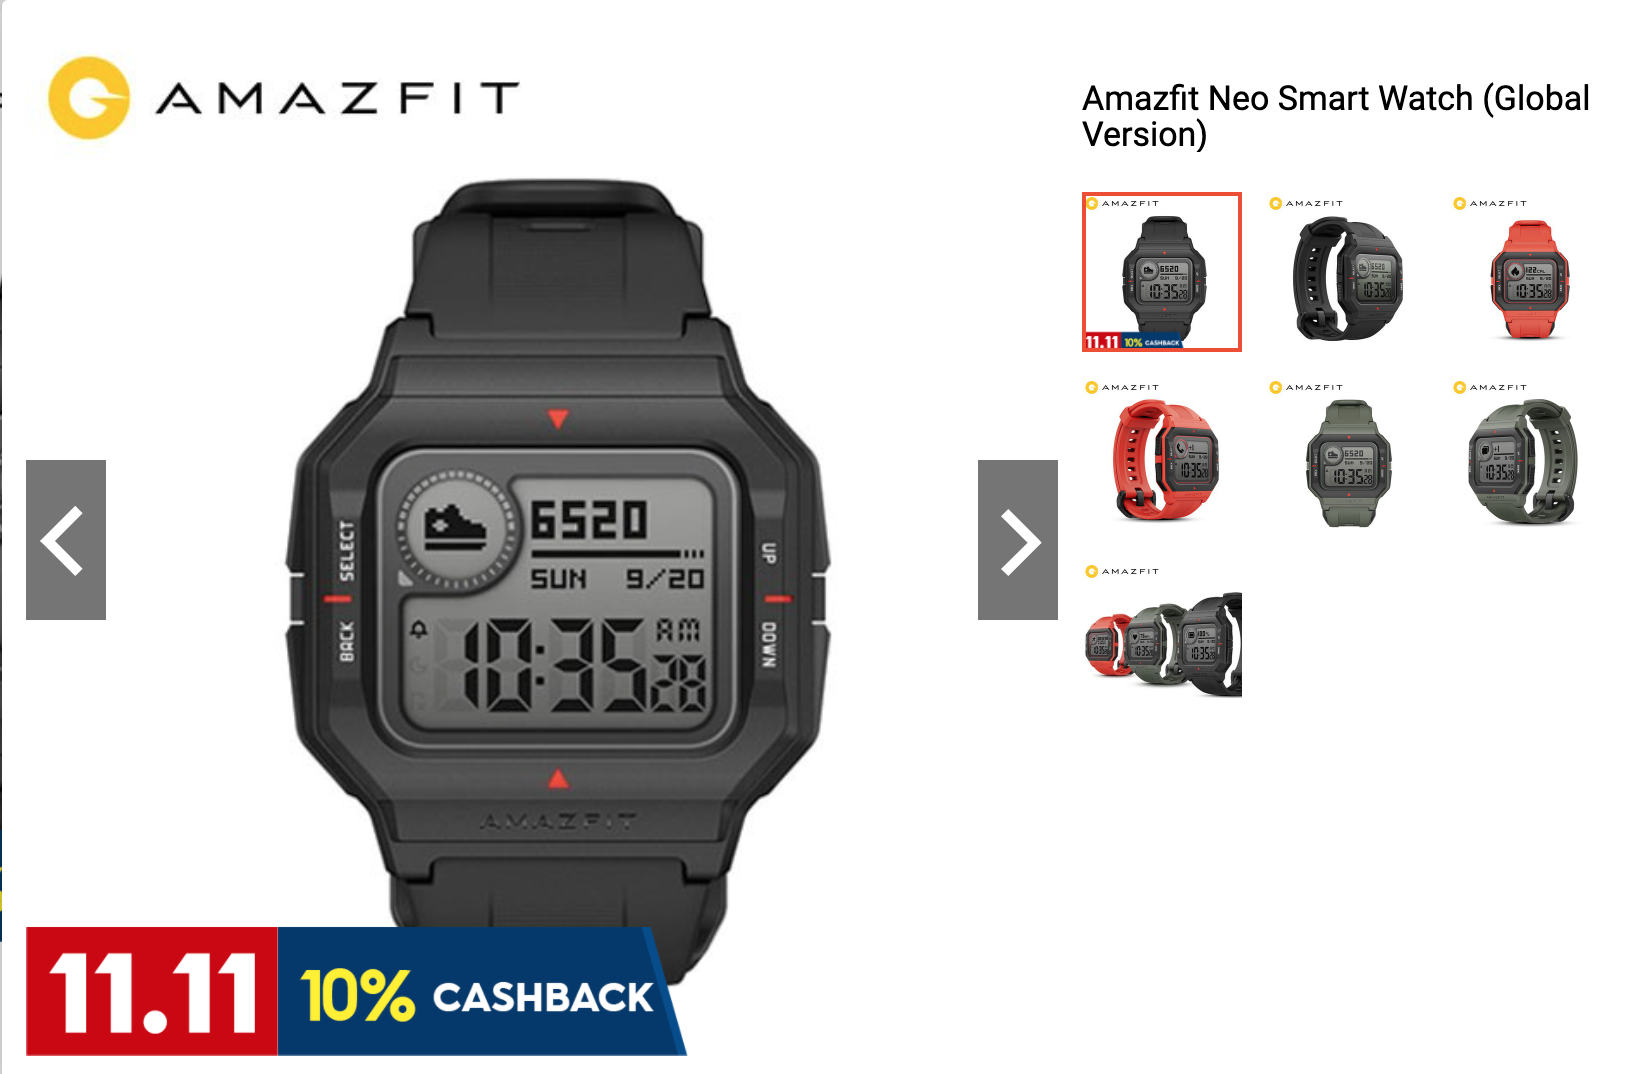 Amazfit Neo Shopee Exclusive Launch